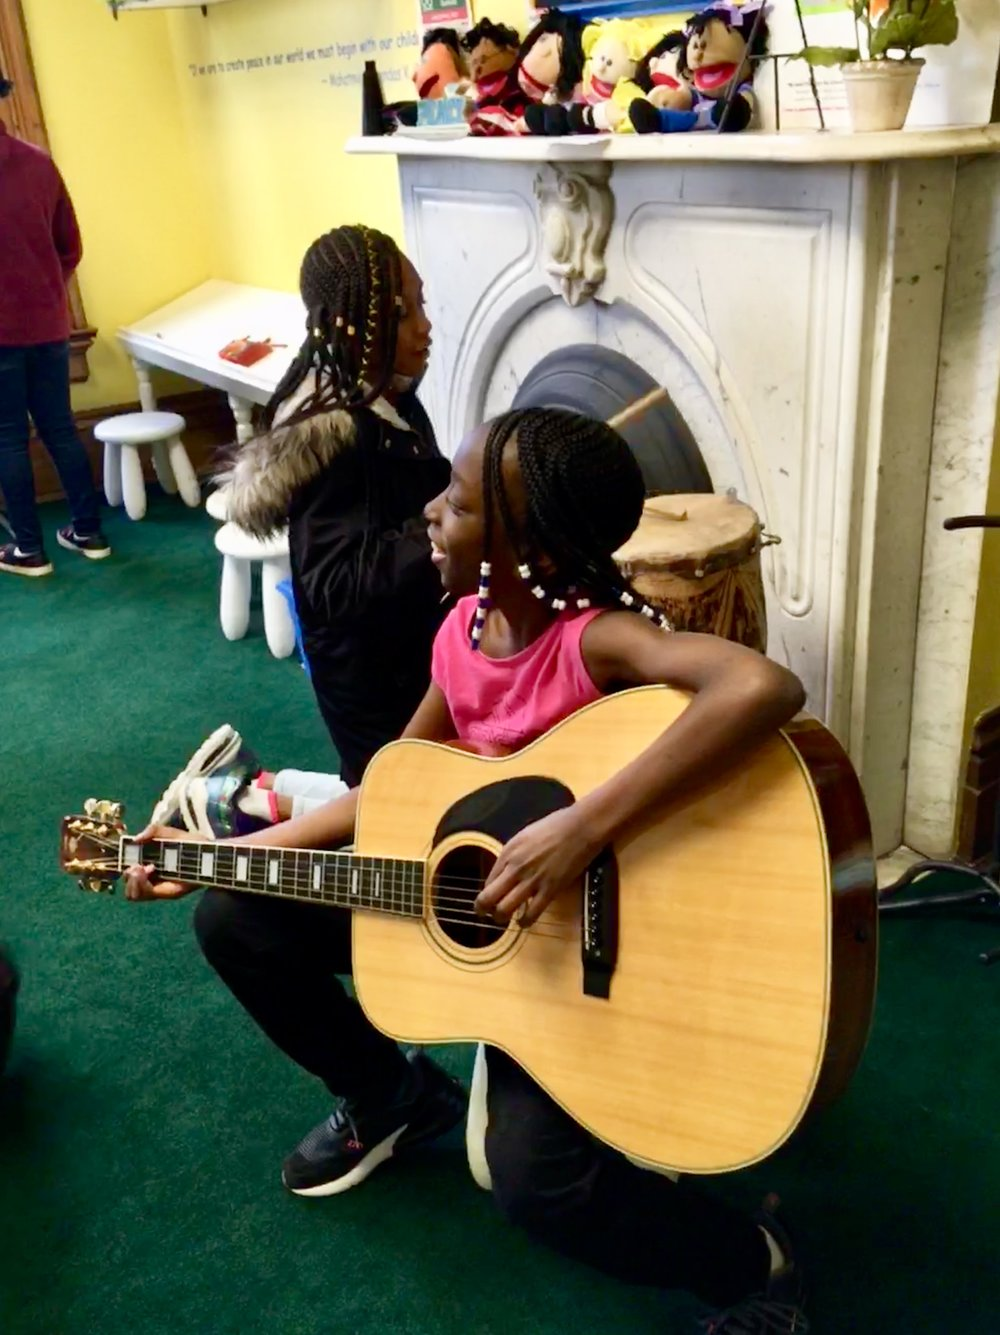 With lots of musical instruments to try out, he museum's children room never fails to draw a crowd. Arguably the loudest room in the museum.